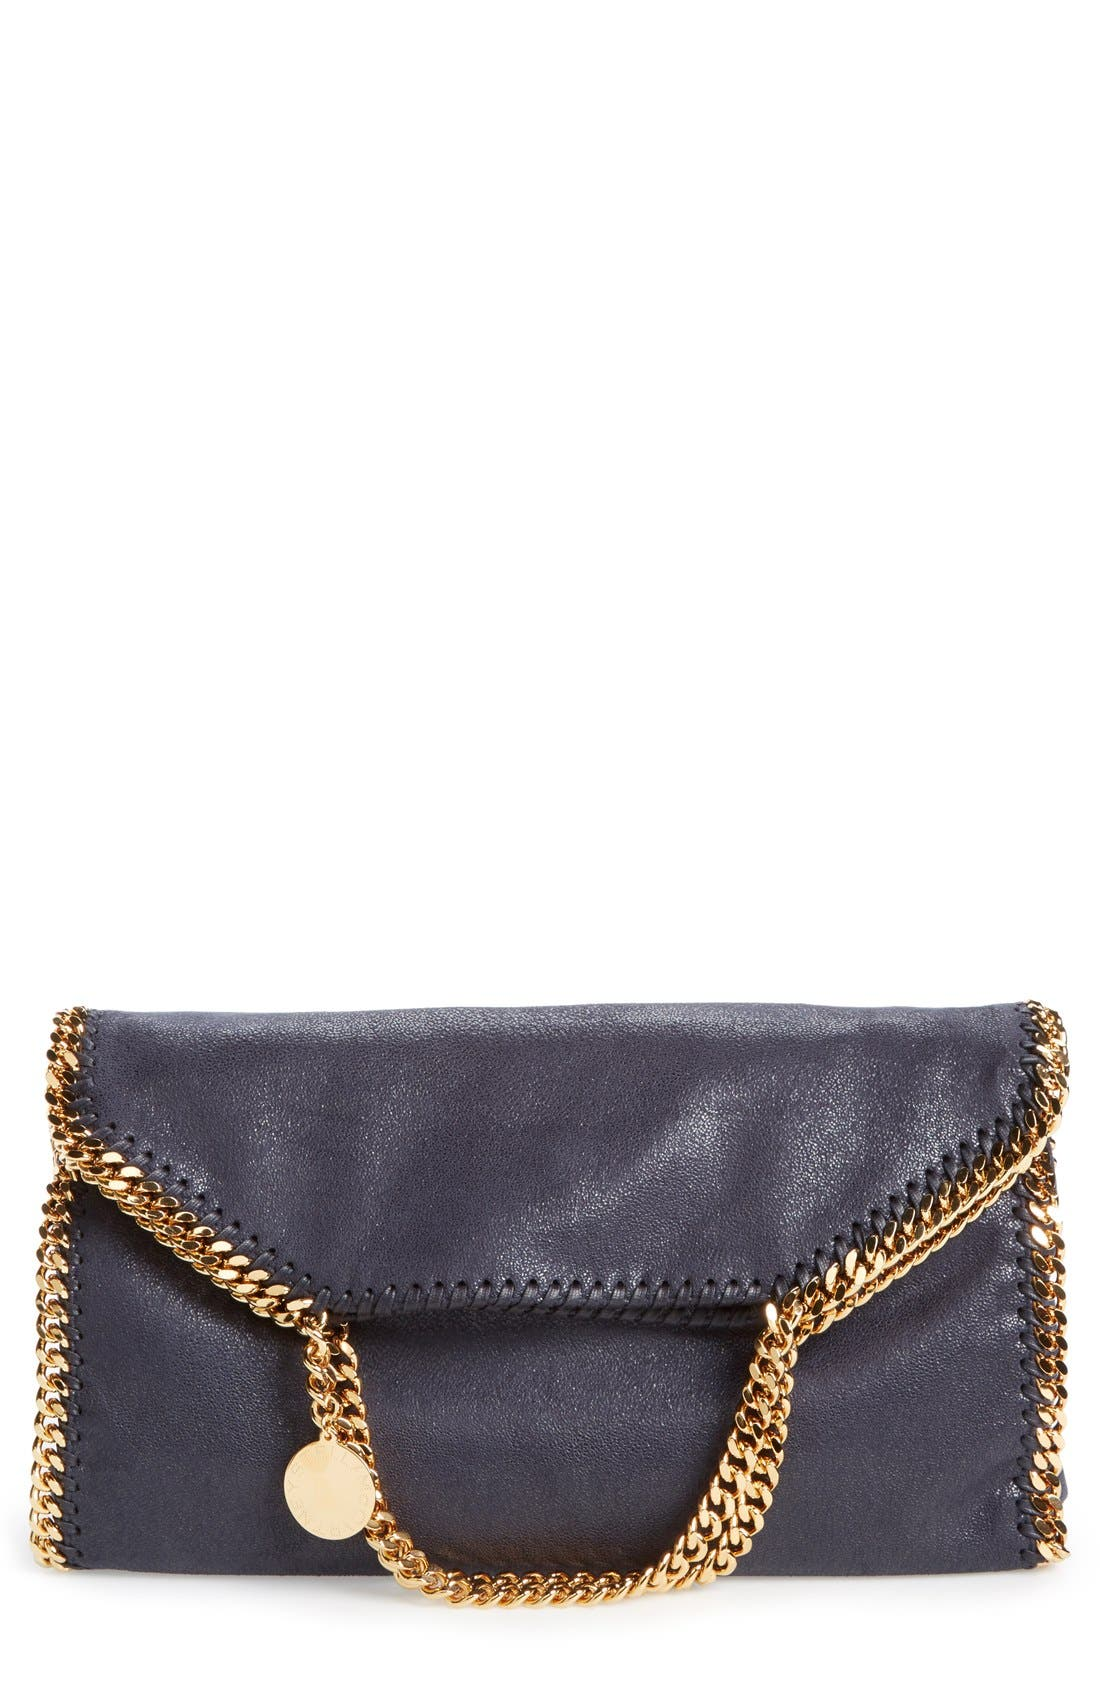 Alternate Image 1 Selected - Stella McCartney 'Falabella' Faux Leather Foldover Tote